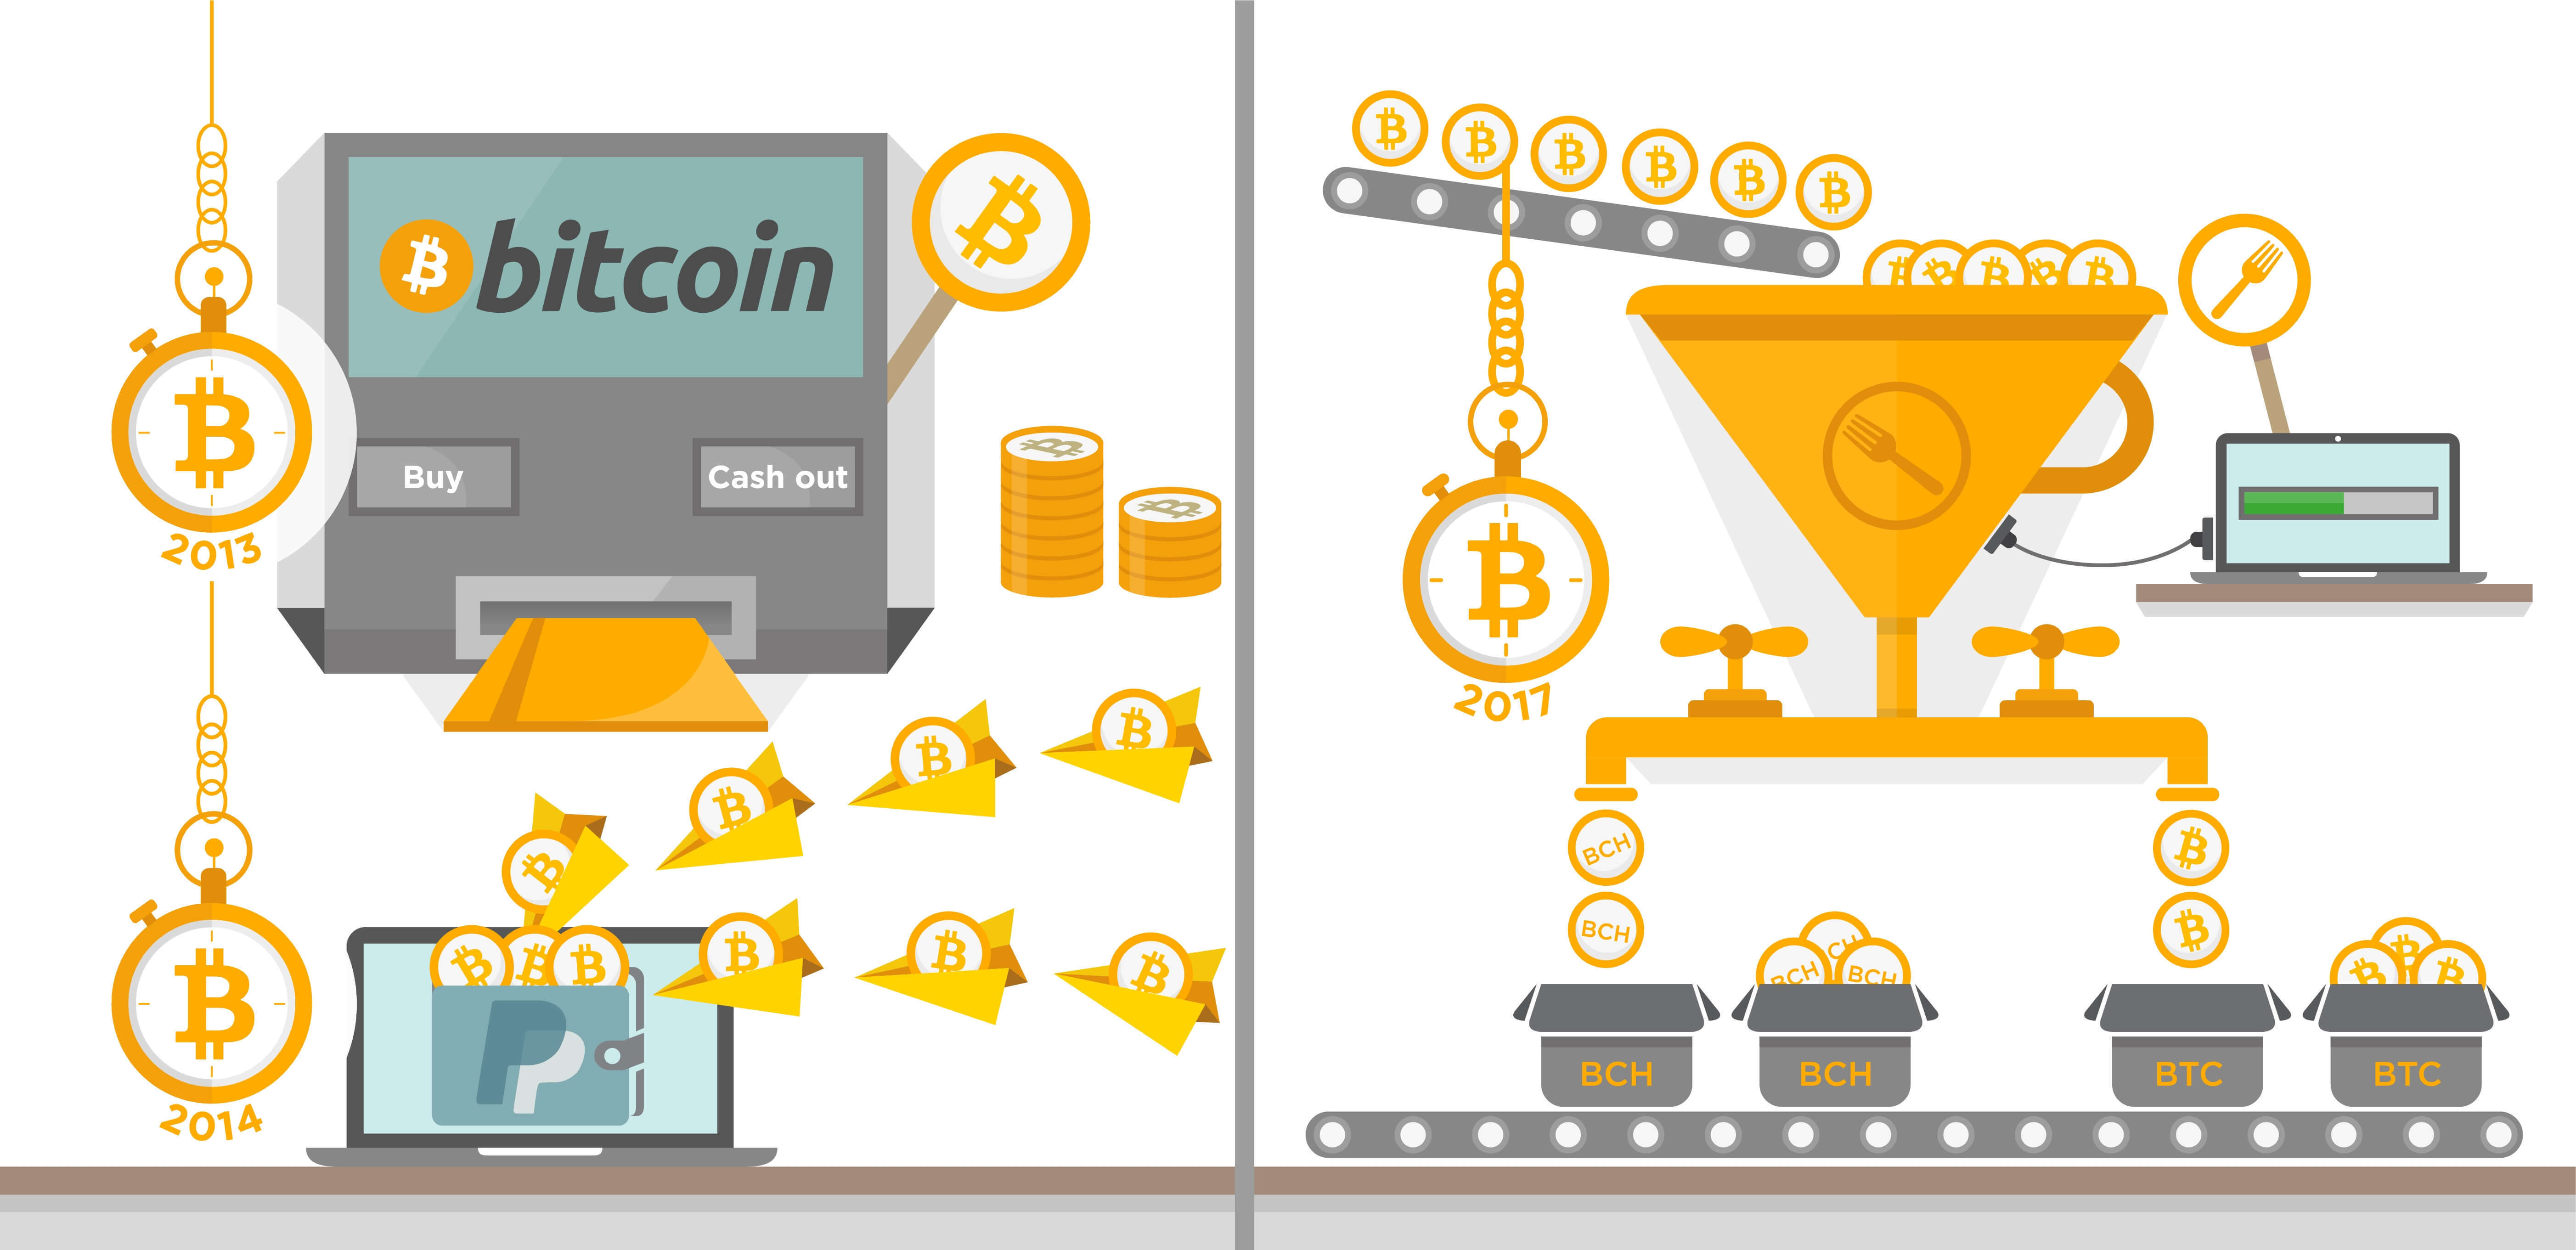 An infographic banner about Bitcoin showing its progress over the years